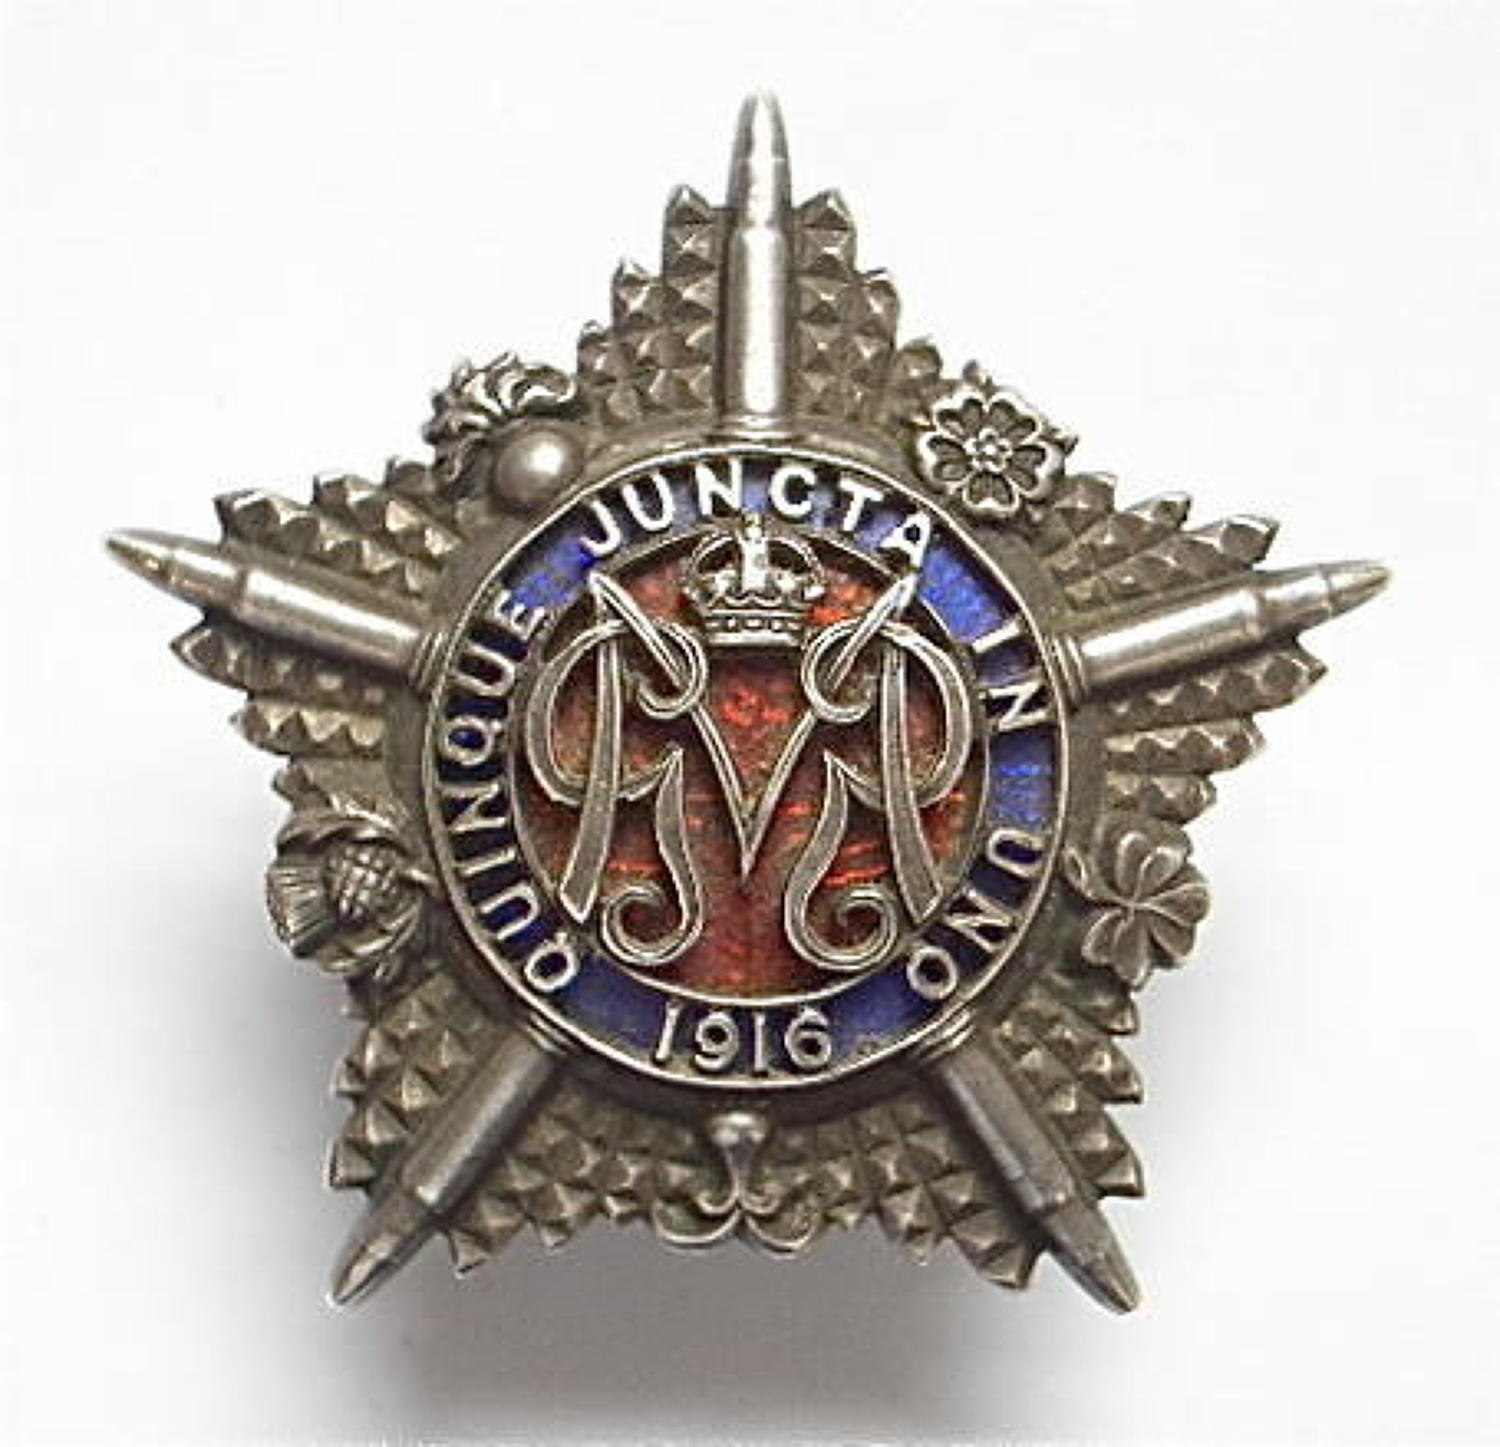 WWI Machine Gun Guards 1916 hallmarked silver cap badge